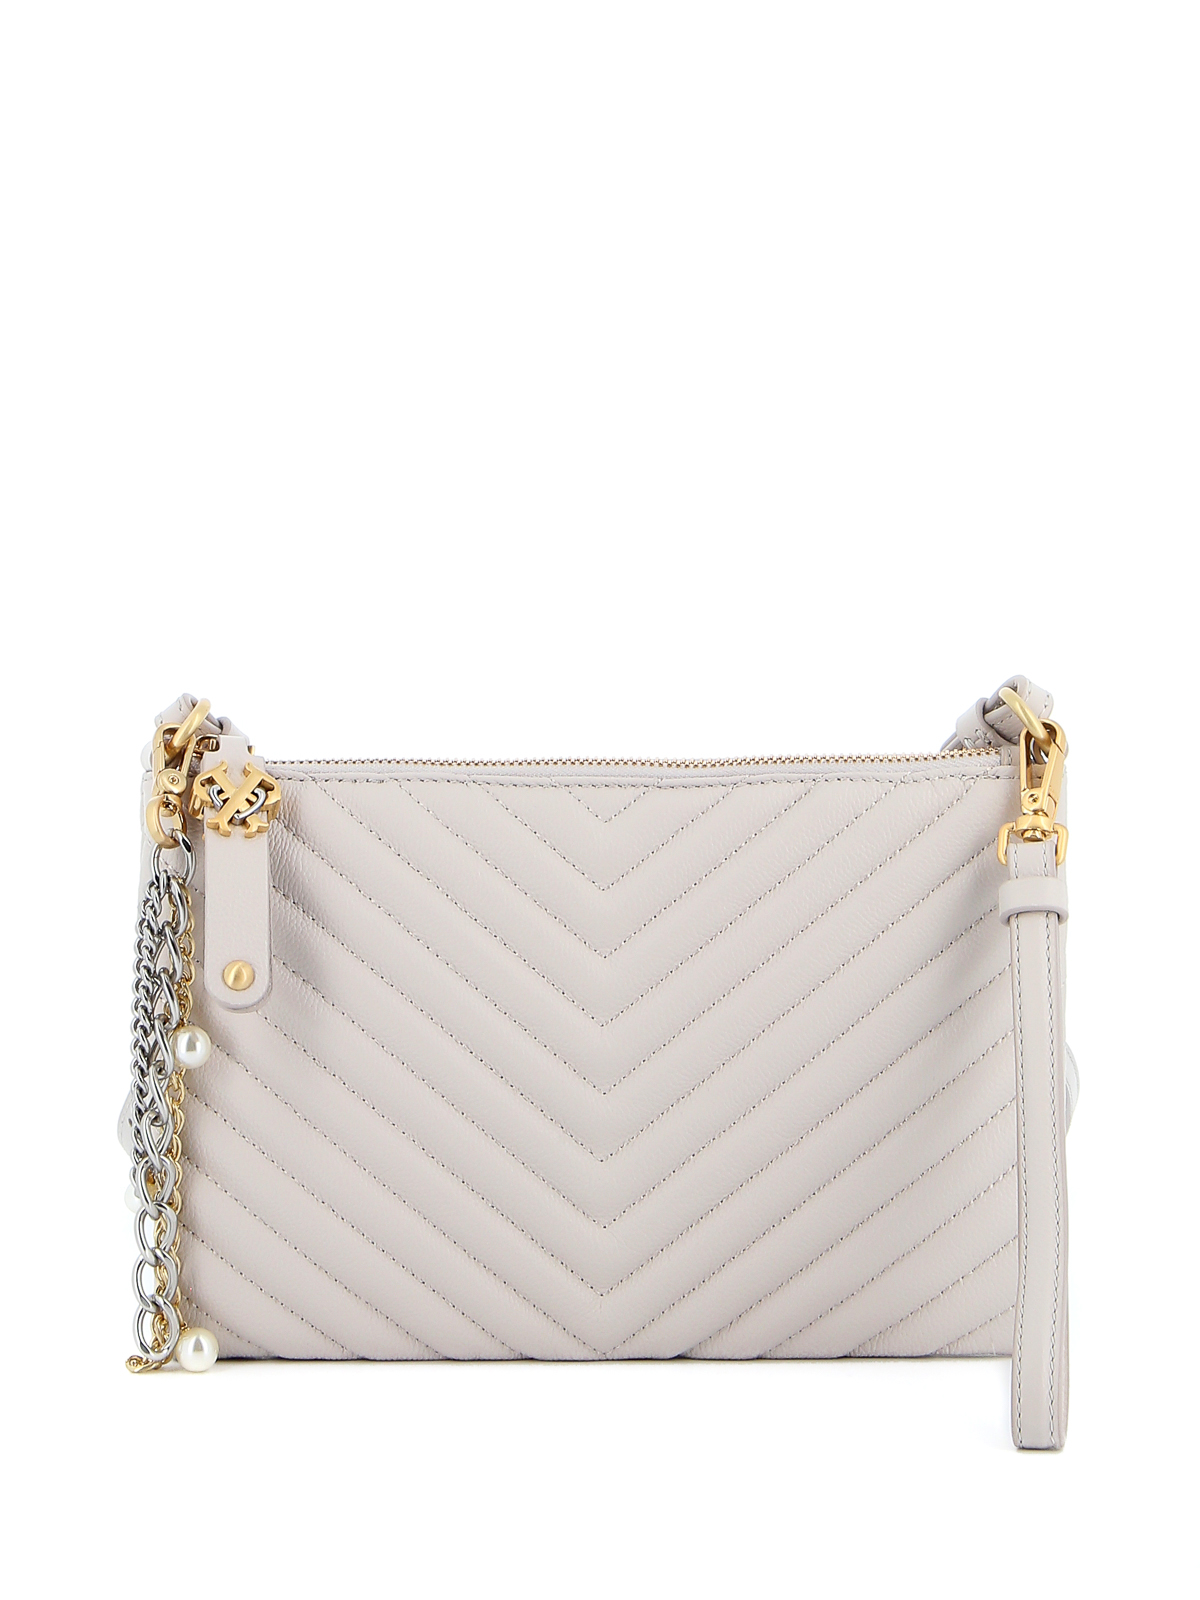 Pinko DOUBLE P FLAT CROSS BODY BAG